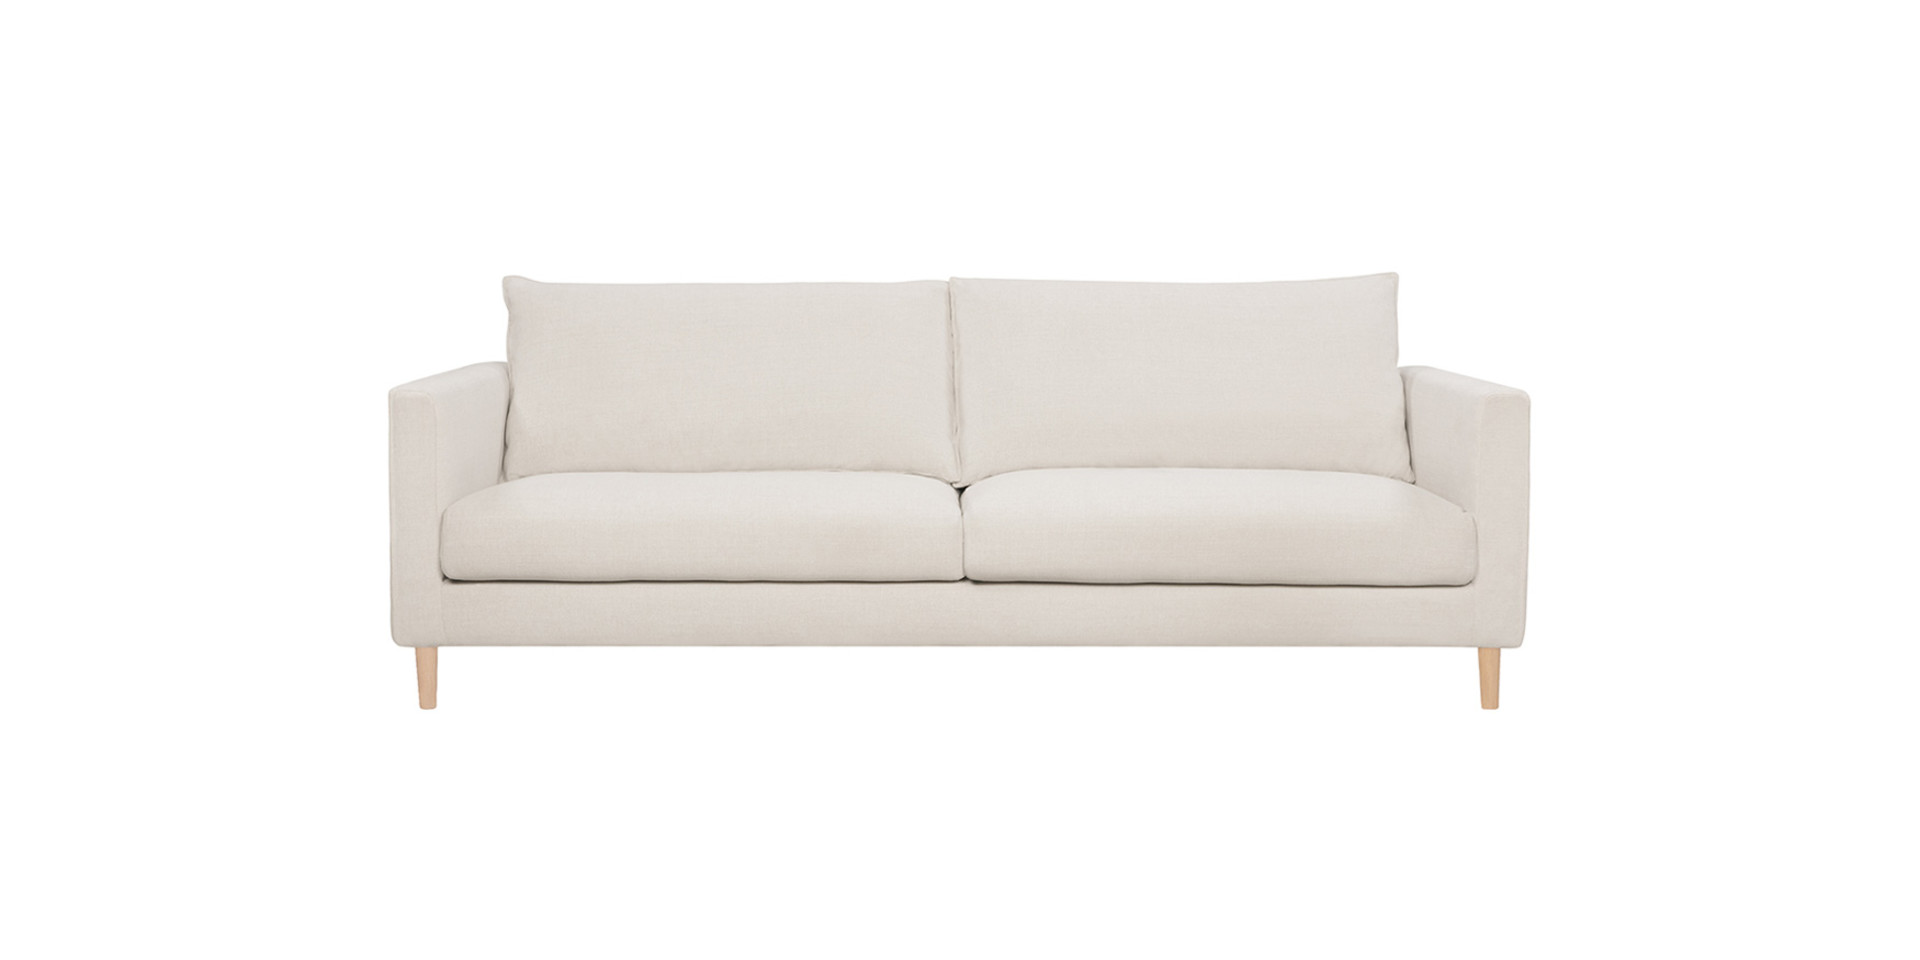 BIANCA_3seater_big_cushions_yeti1_natur_1